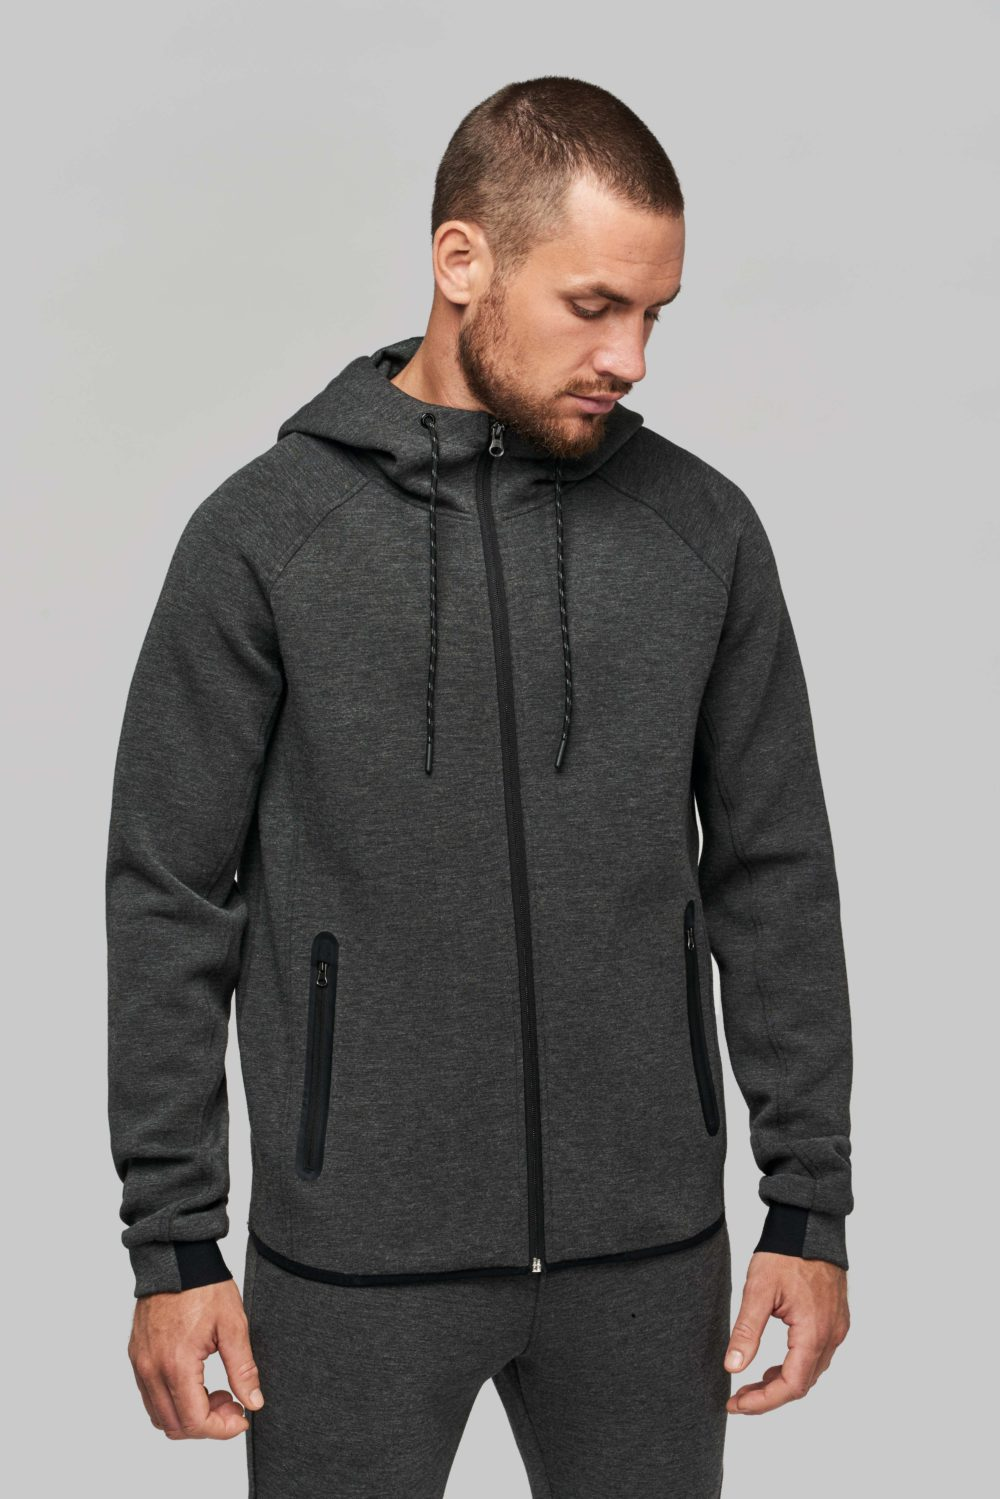 PA358 Men's Hooded Sweatshirt Proact